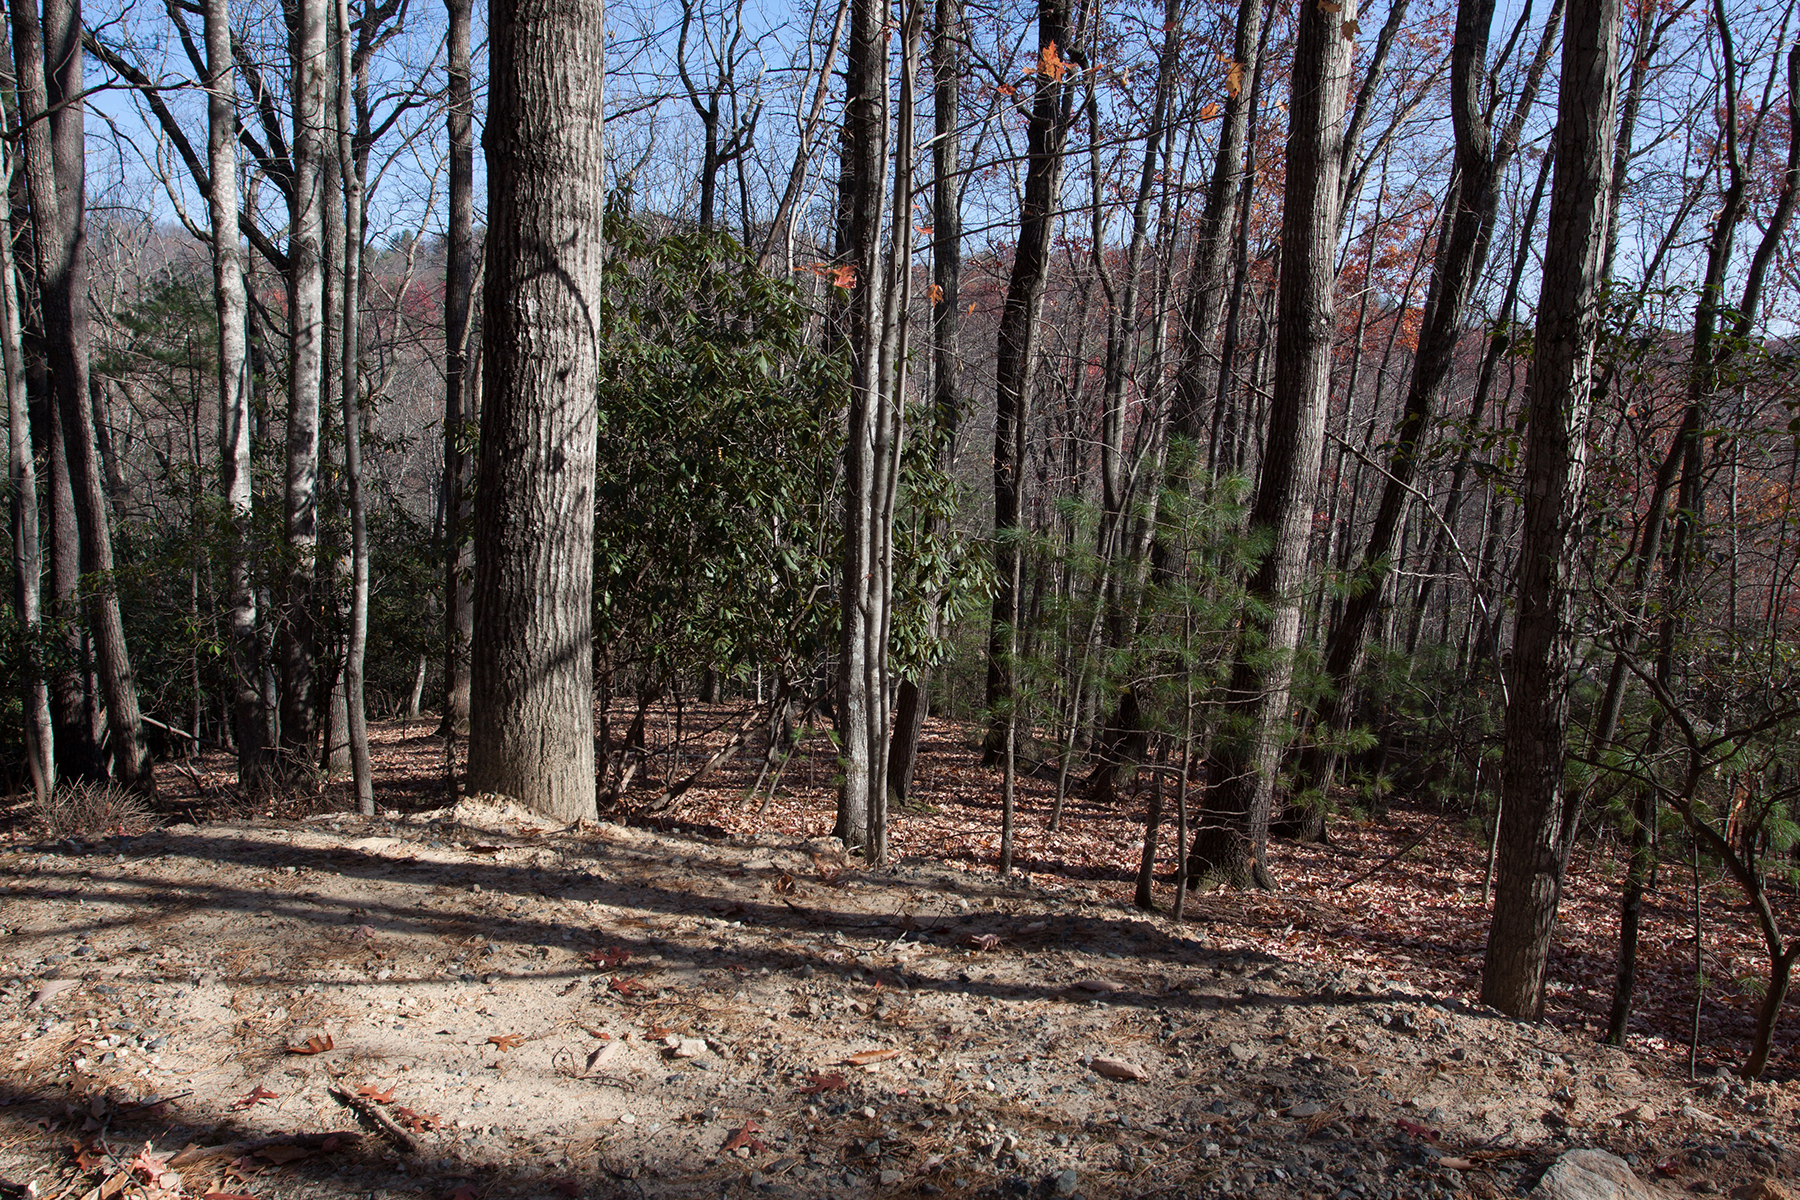 Land for Active at DEEP GAP - POWDERHORN Lt 20,21 Trout Lake Rd Deep Gap, North Carolina 28618 United States